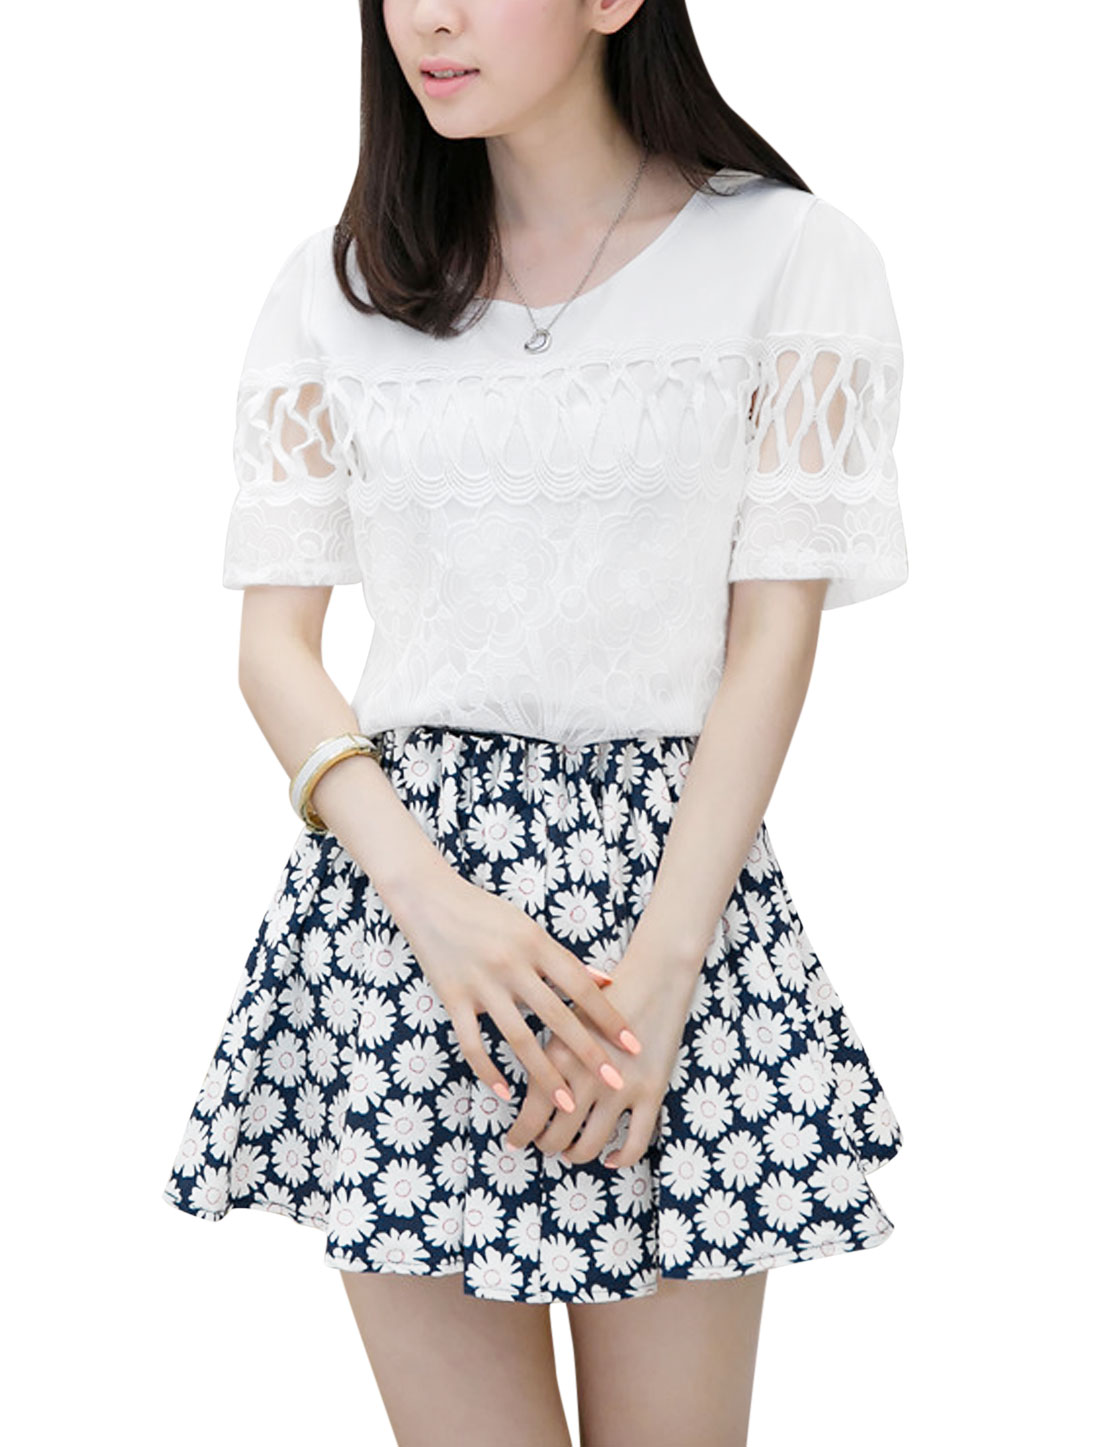 Lady Chiffon Mesh Panel White Blouse w Allover Floral Print Blue Skirt S